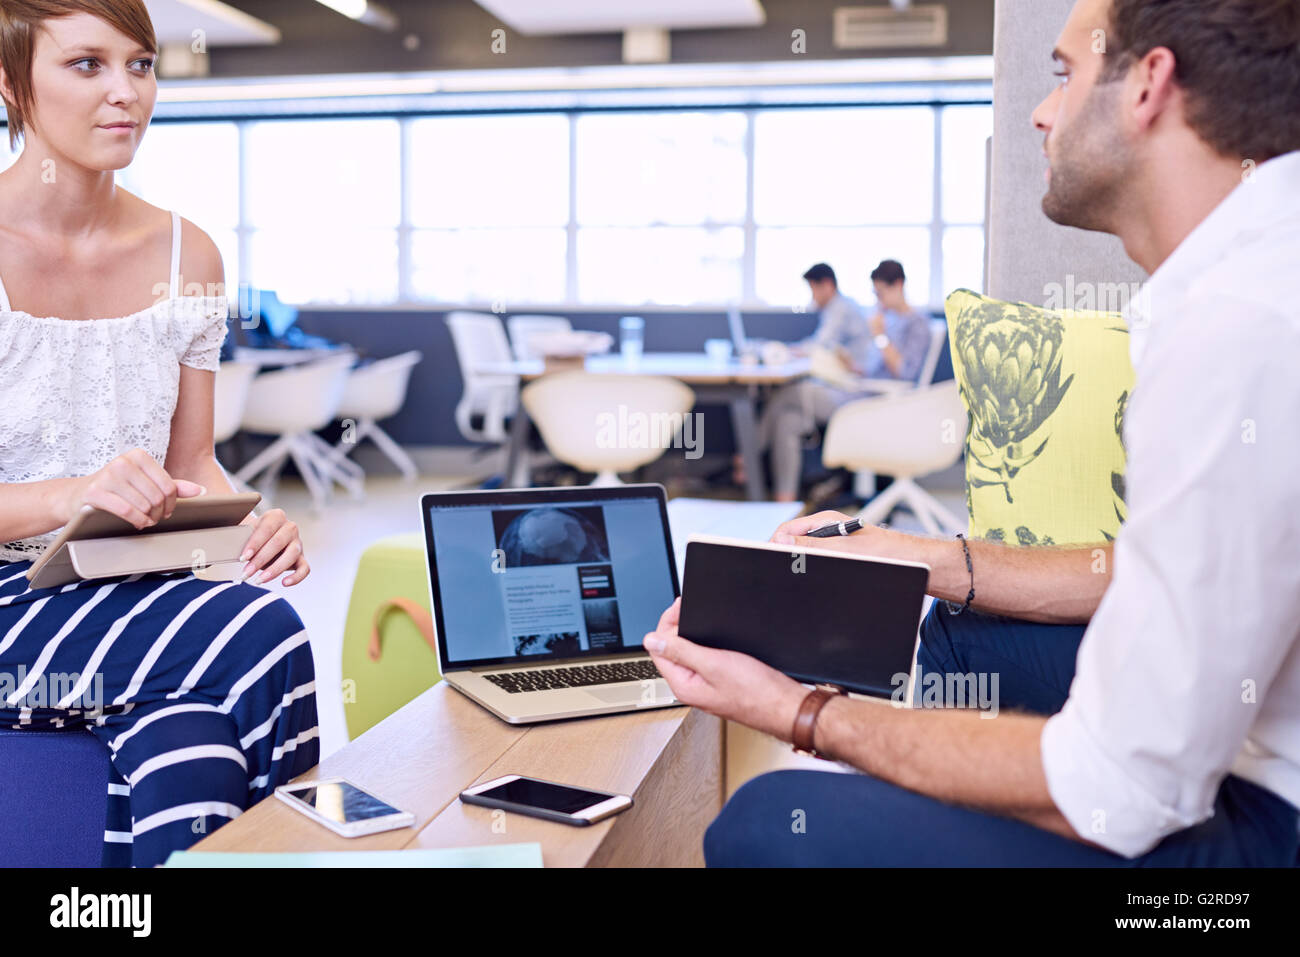 Woman holding tablet while paying attention to male business partner - Stock Image